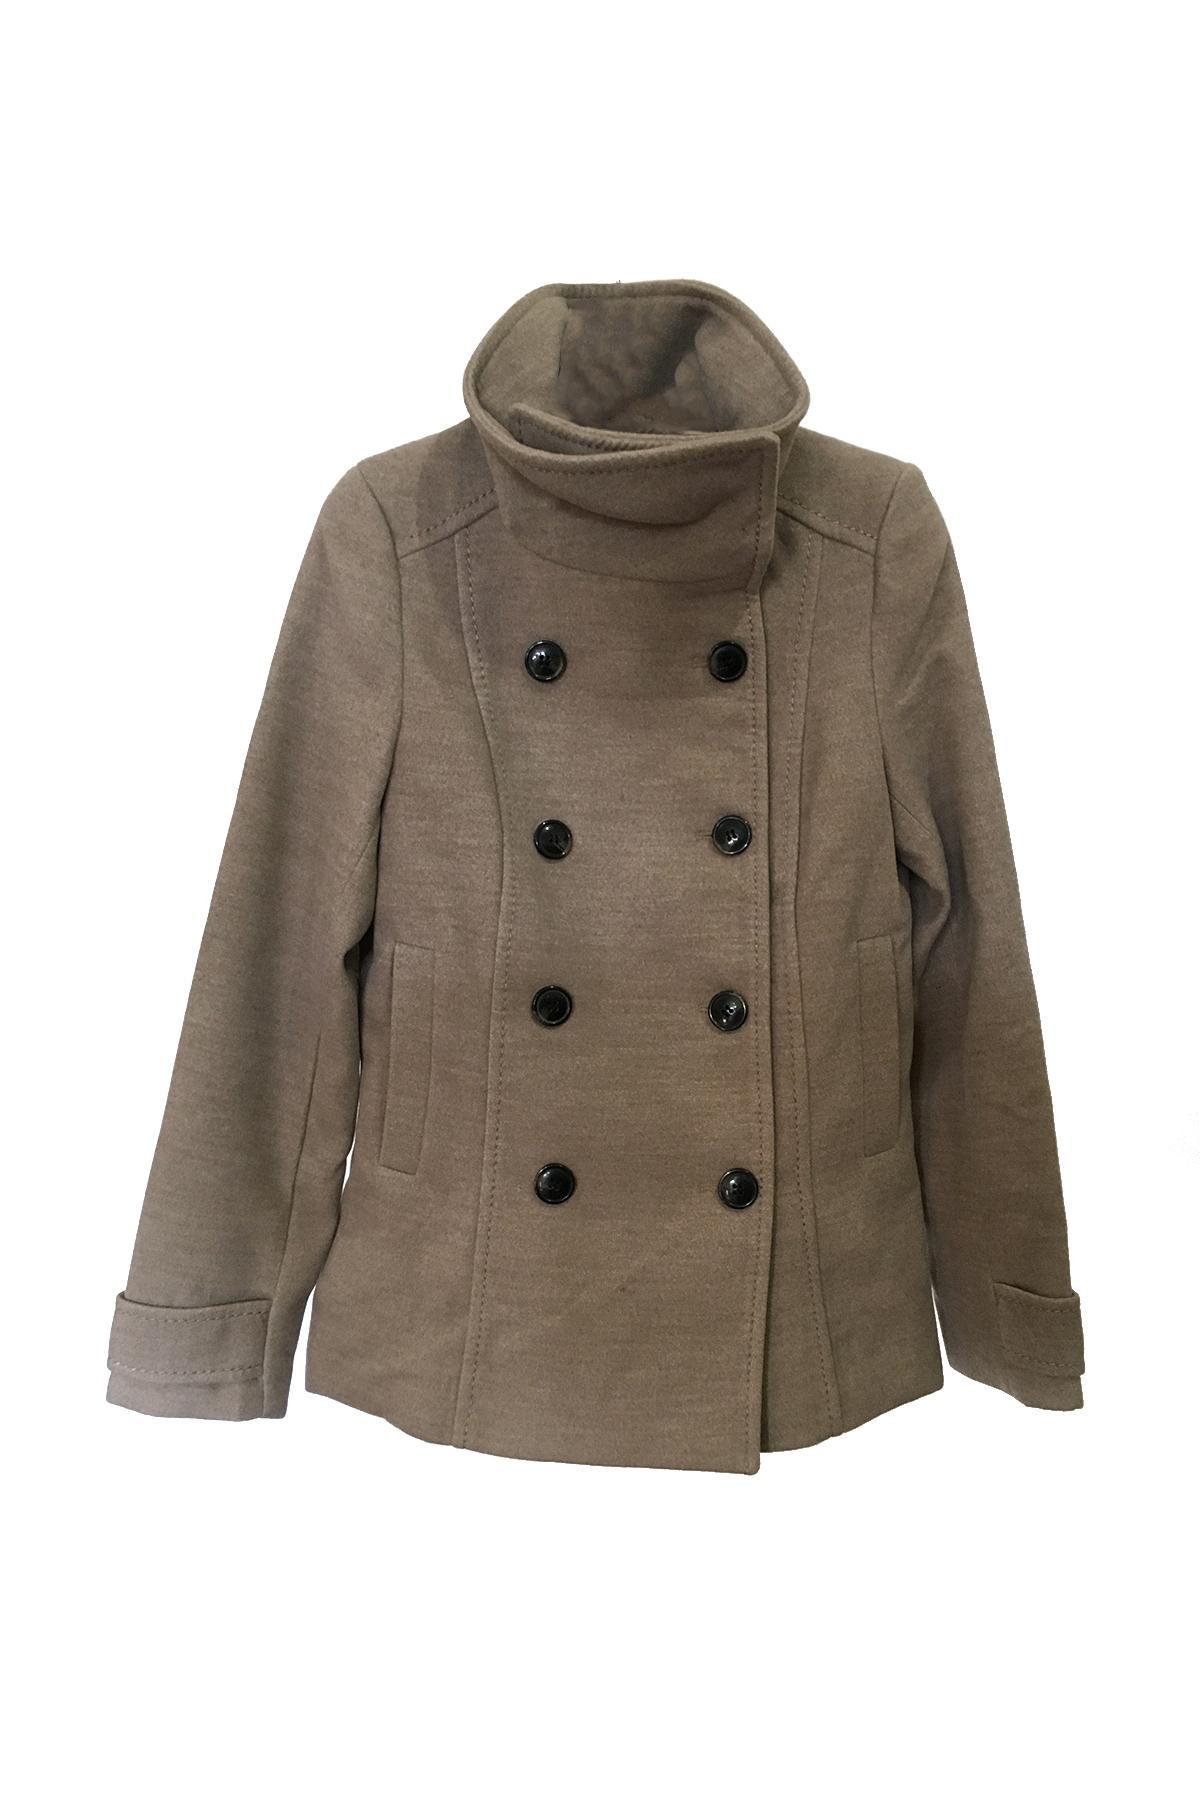 buy, double, breasted, short, coat, h&m, women's, 0390162002, brown, color, deliver price from50.31 $